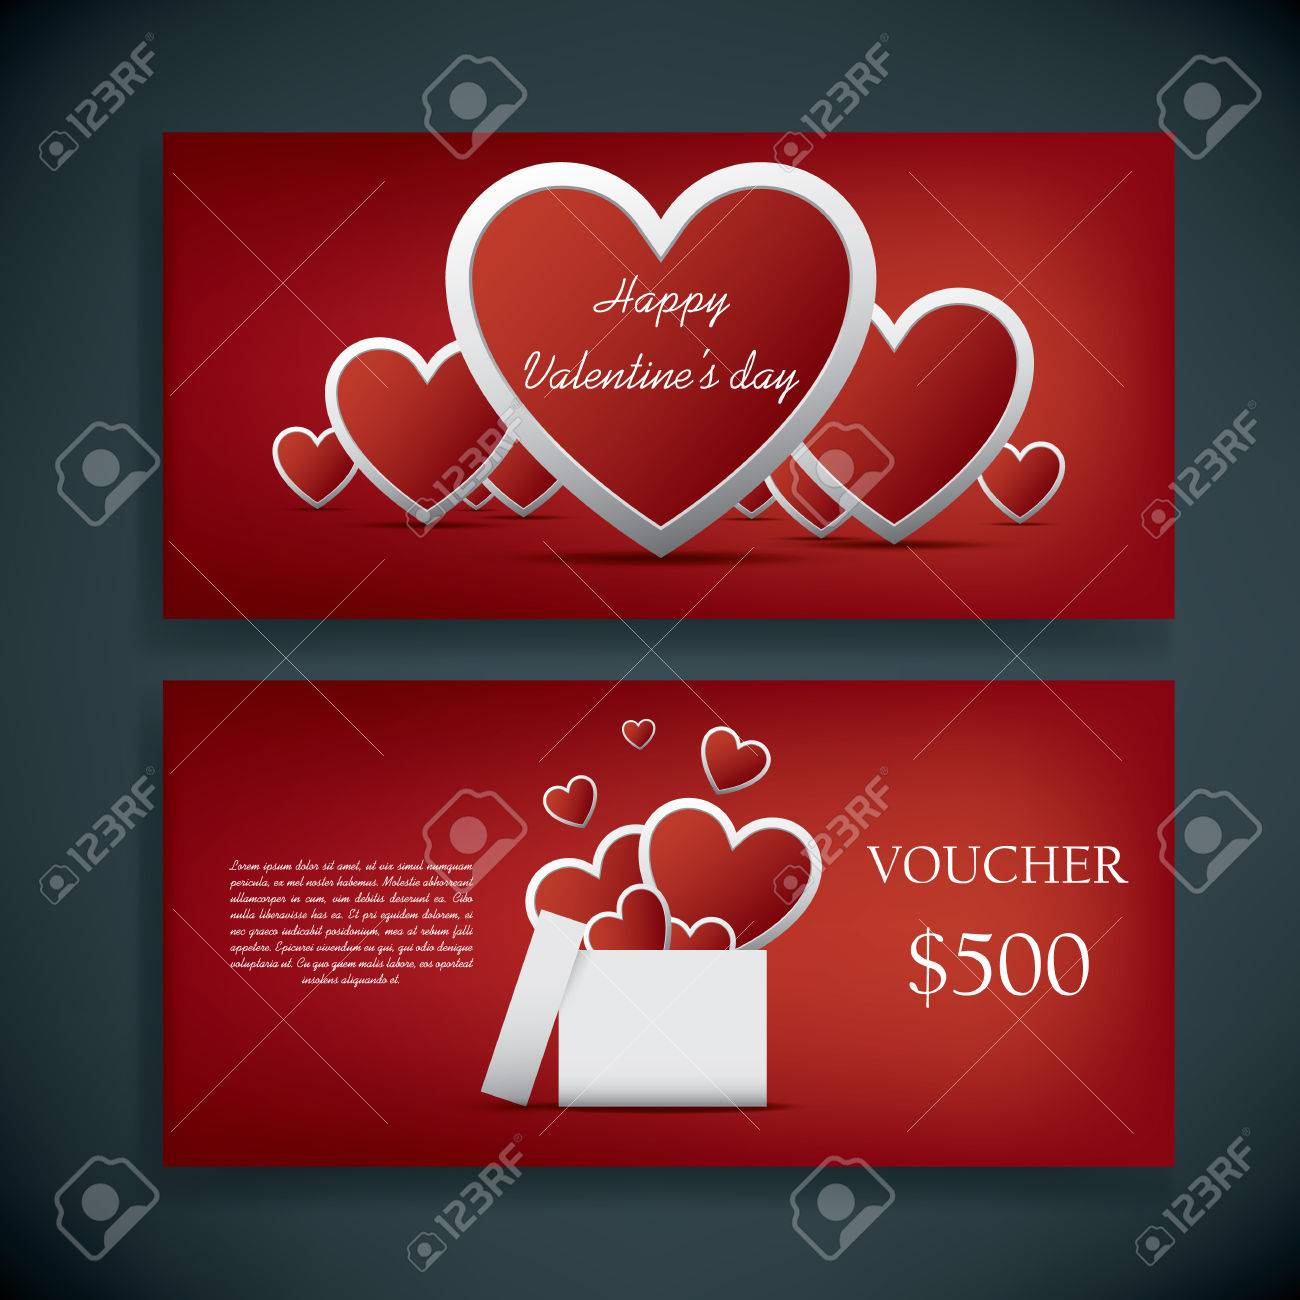 valentine's day gift card voucher template with traditional, Ideas